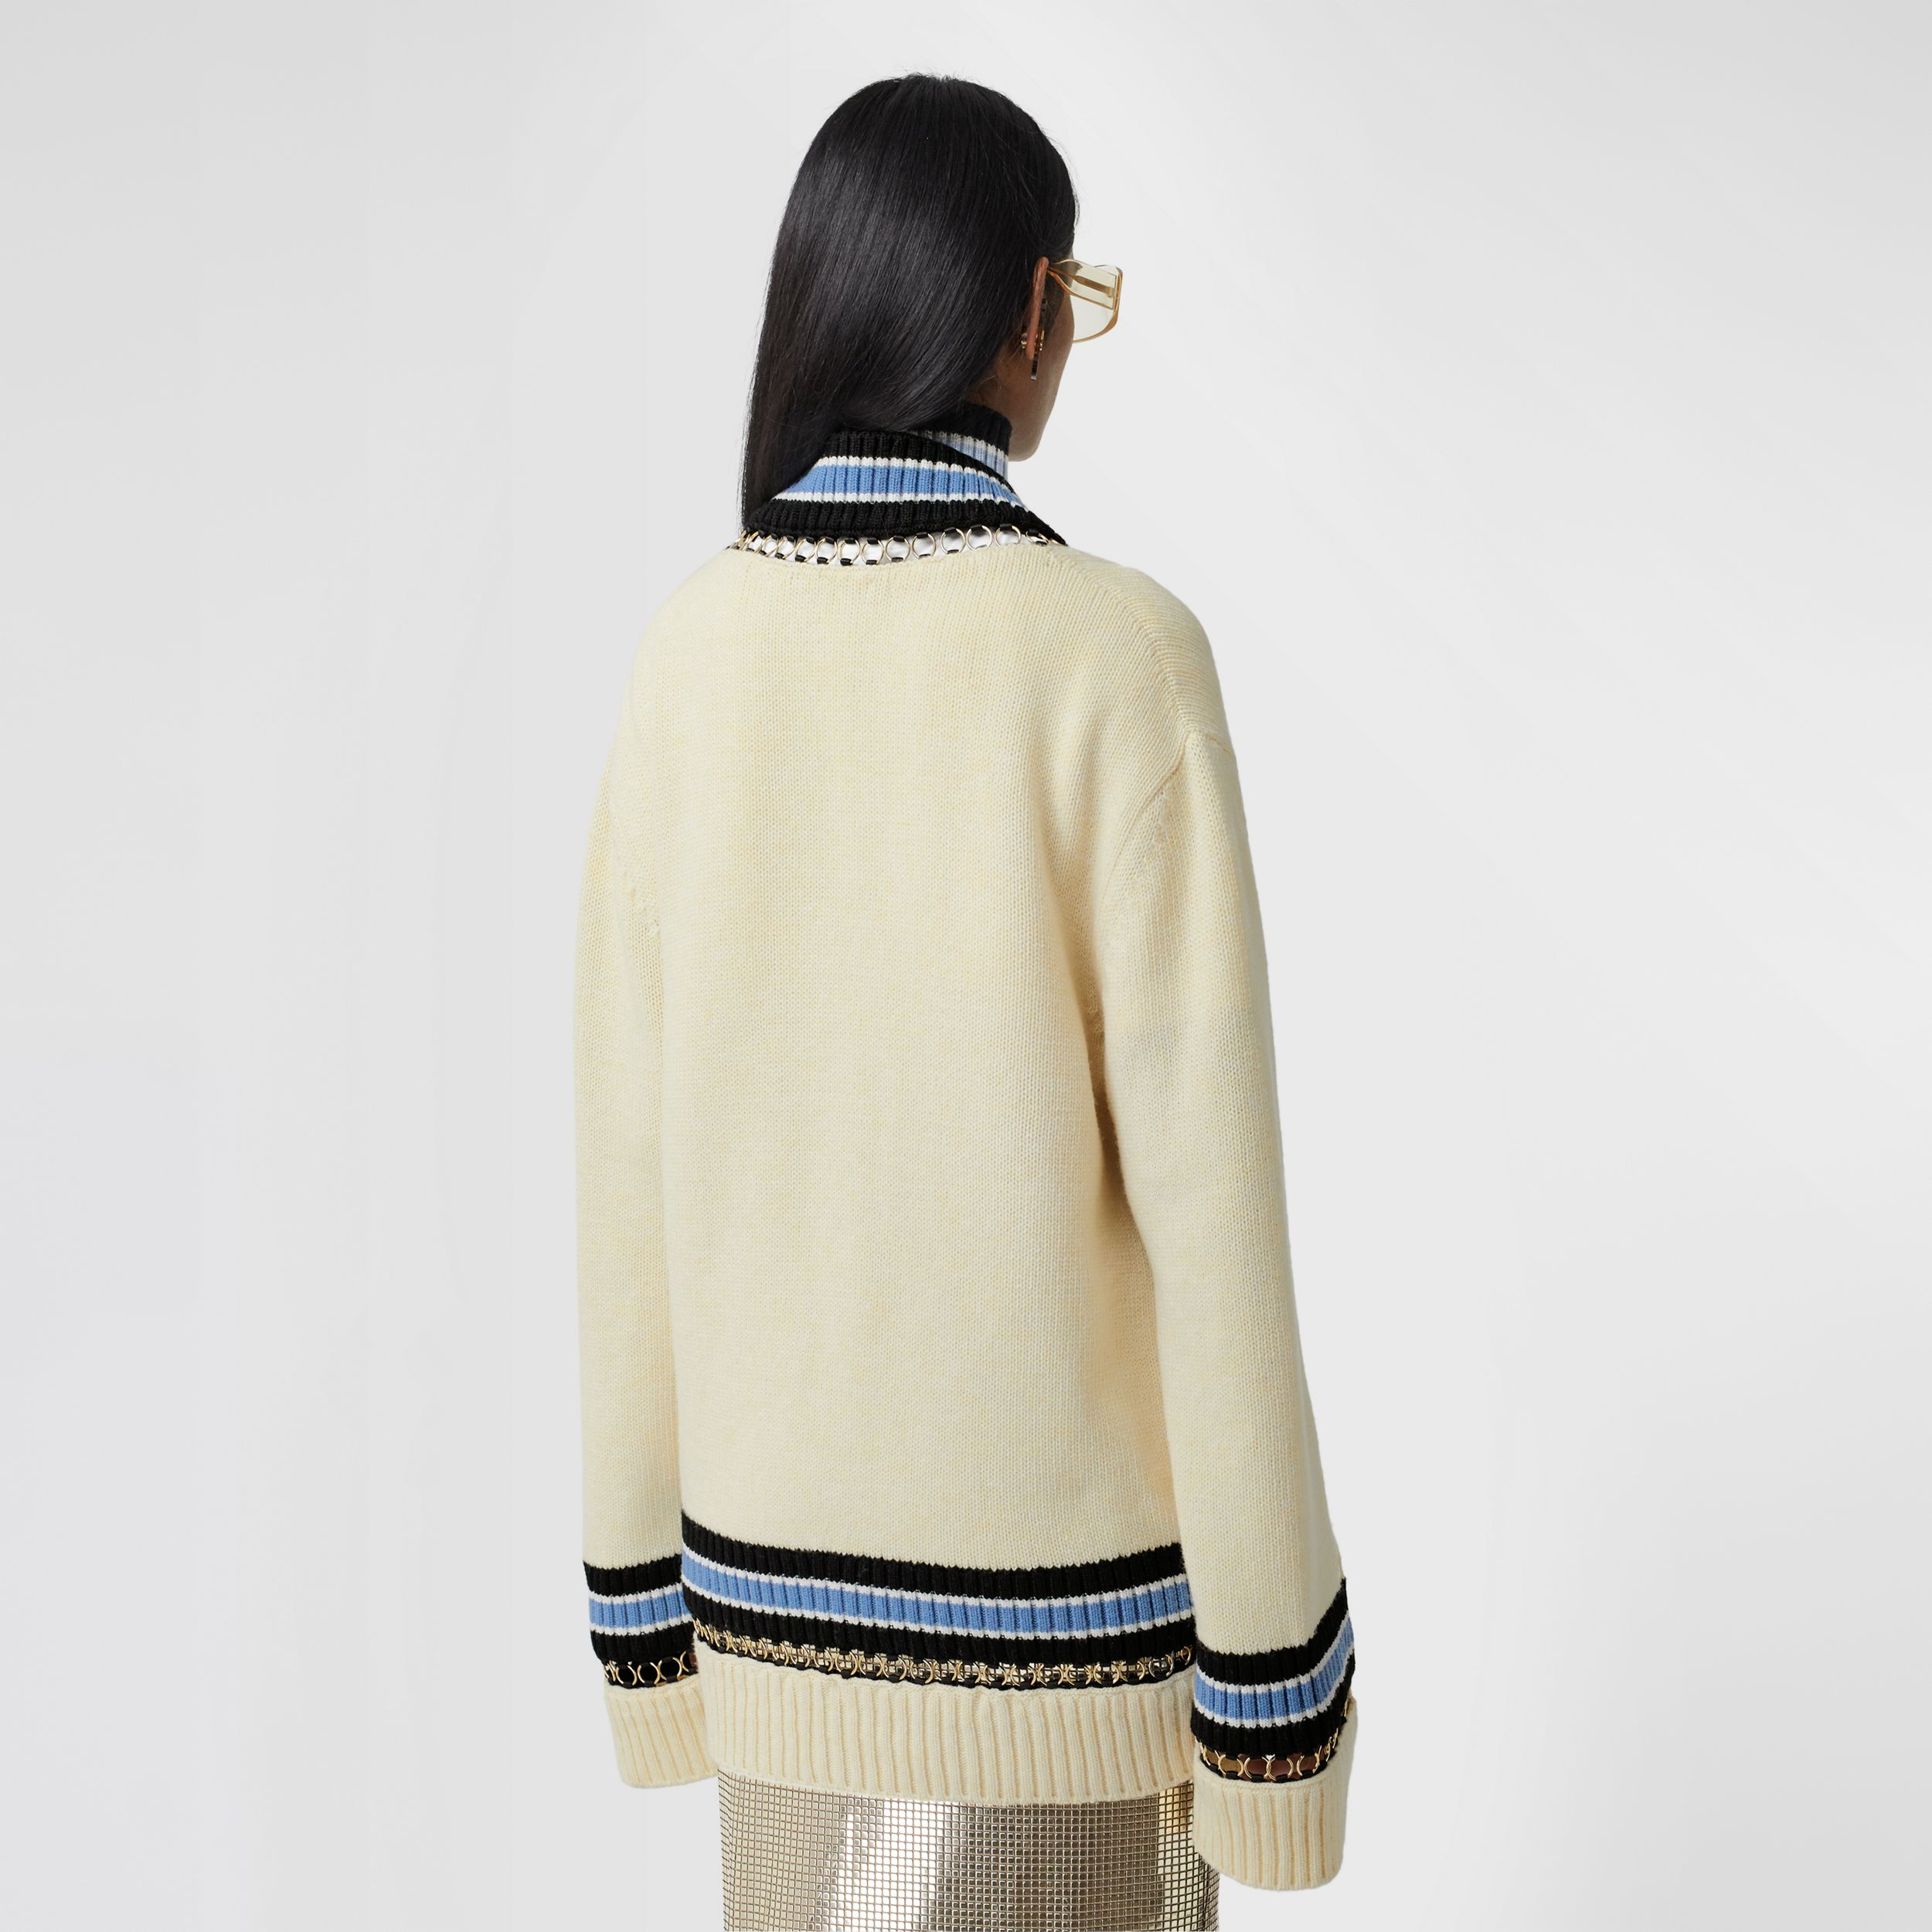 Ring-pierced Wool Oversized Cricket Sweater in White - Women | Burberry - 3